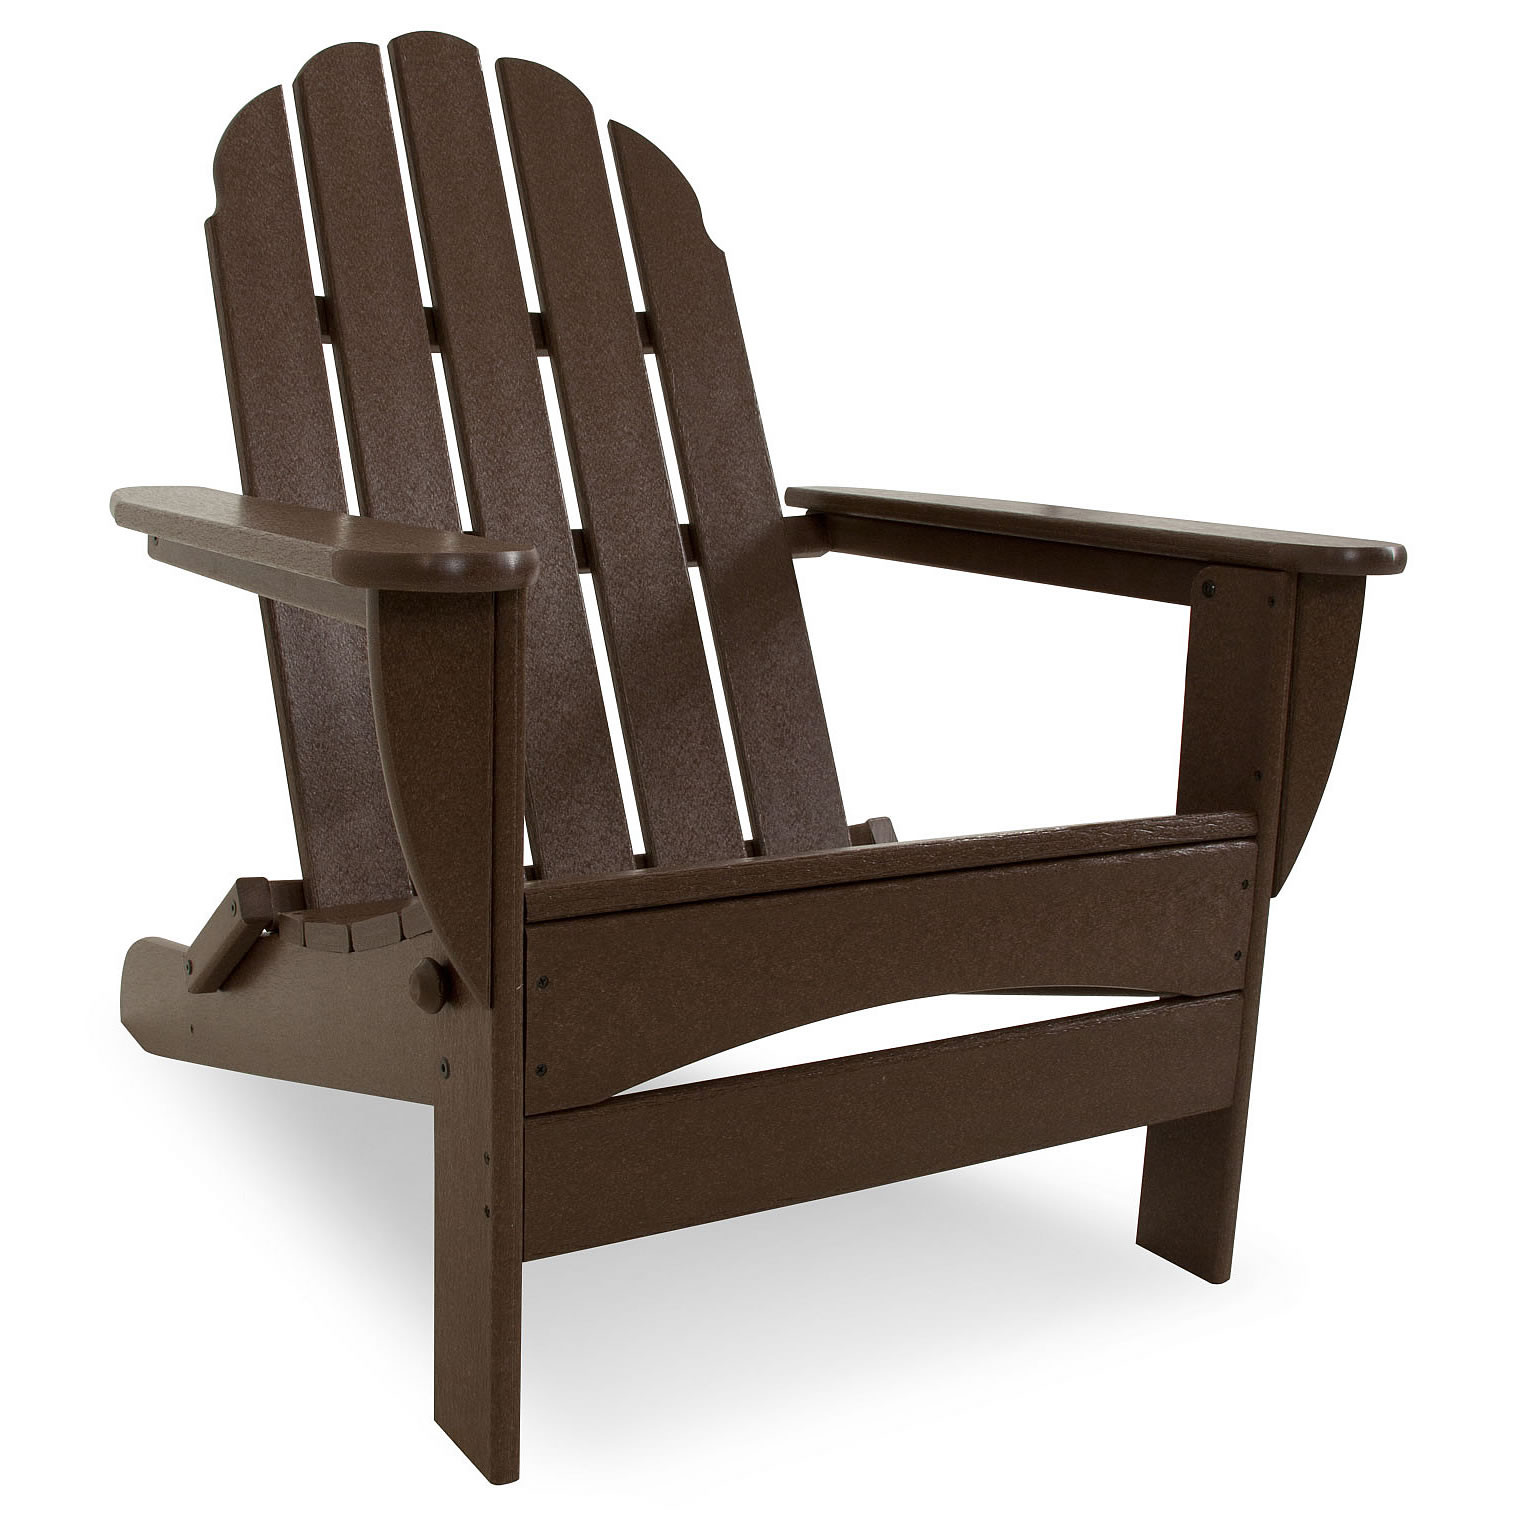 Oversized Patio Chairs Polywood Classic Oversized Curveback Adirondack Chair